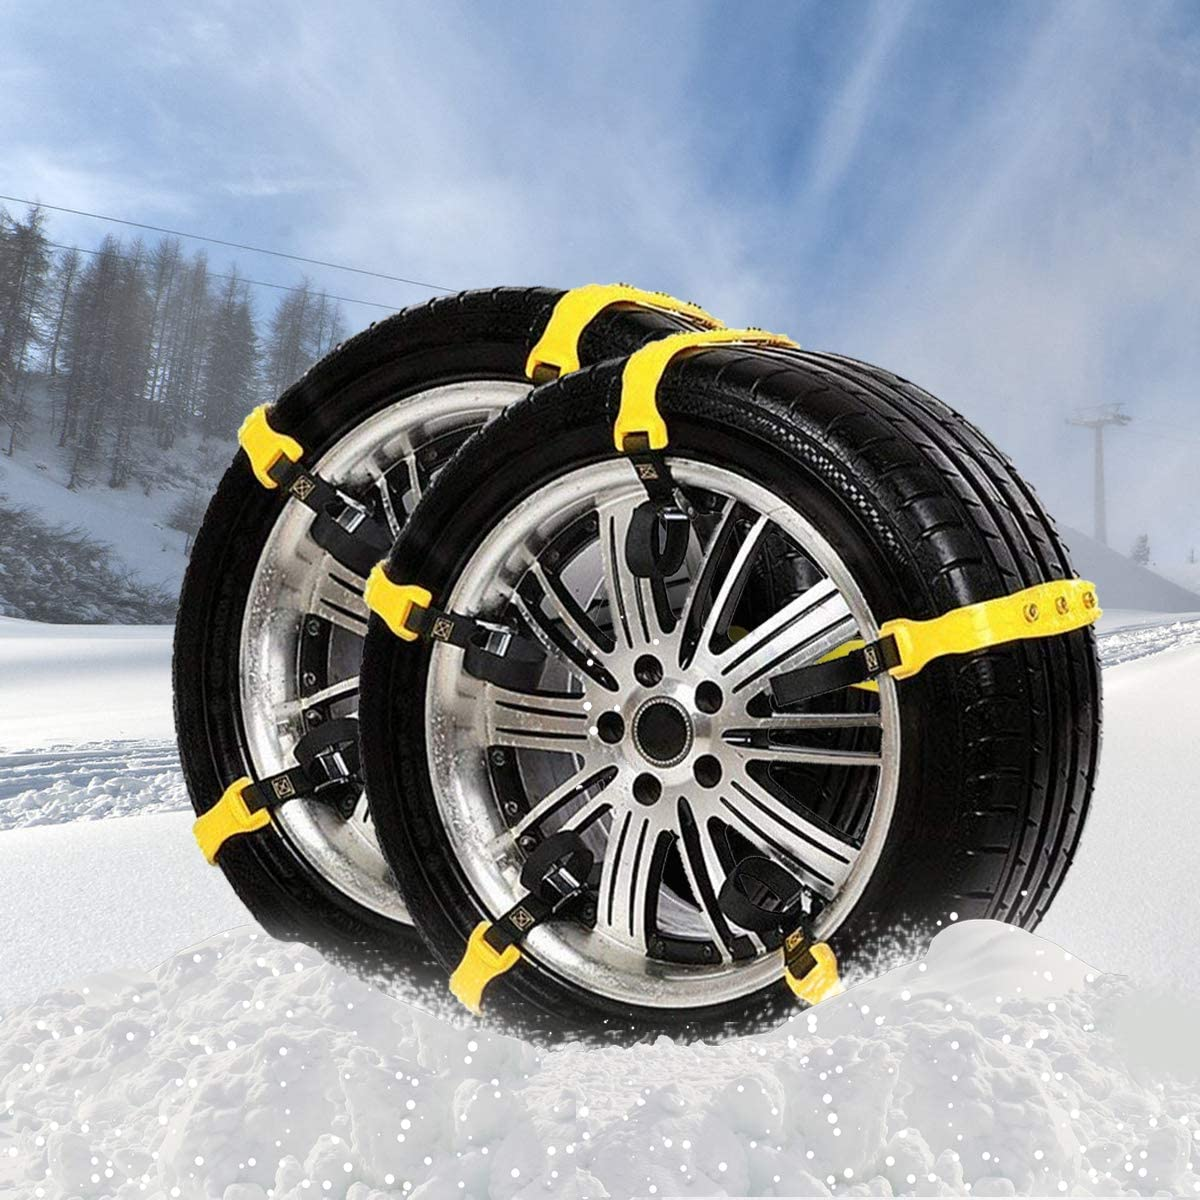 Winter Car Snow Chain 2Pcs Anti-Skid Snow Chains Portable Easy to Mount Emergency Traction Car Snow Tyre Chains Anti-Skid Car Tire Snow Chains Universal Tire Chains